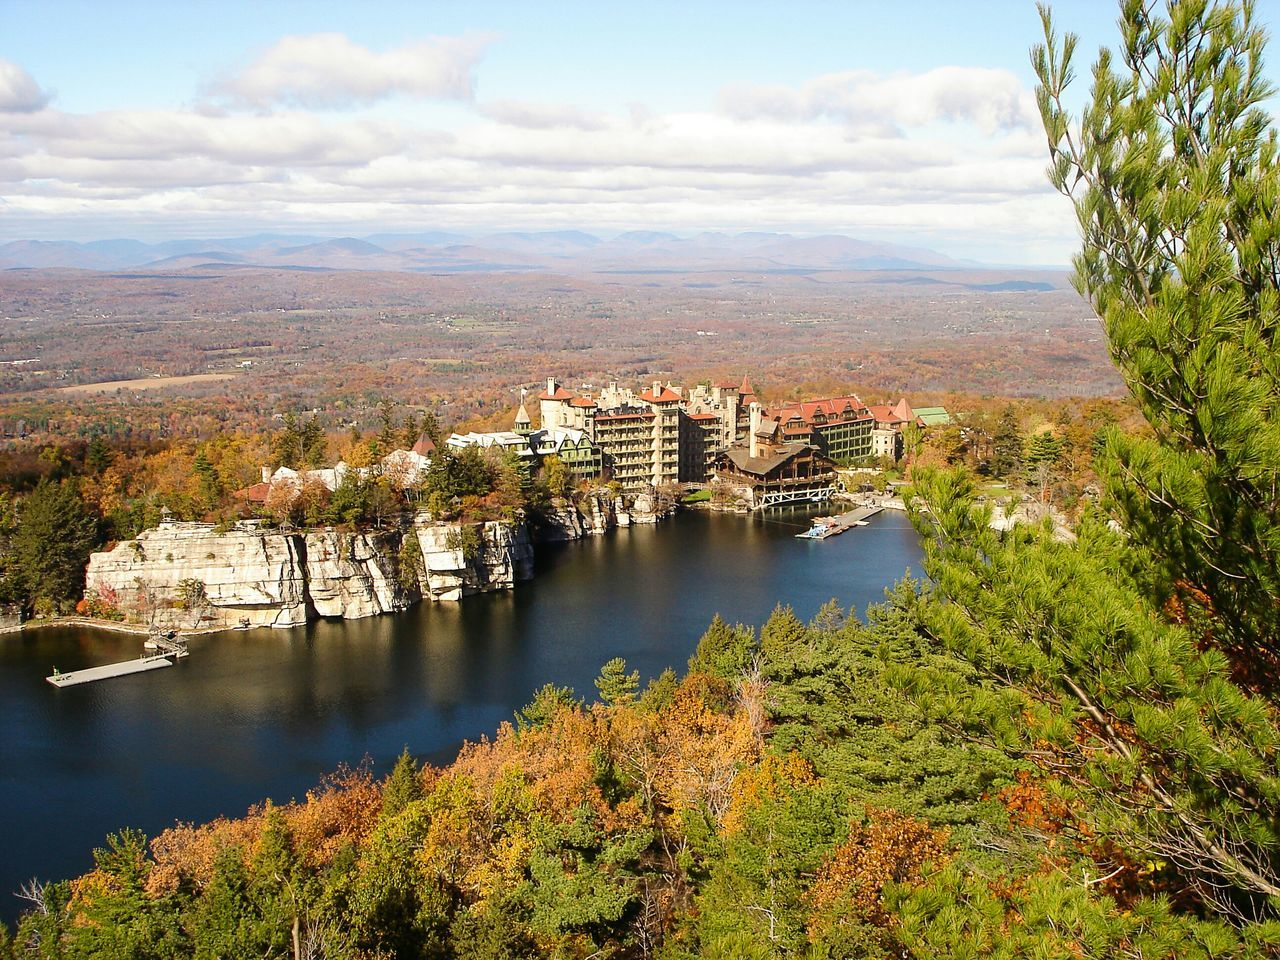 Little excursion from New Paltz, 130 km North of New York. This is the Mohonk Lake Landscape_Collection Lake New York State New Paltz Mohonk Preserve Mohonk Mountain House On A Hike View Autumn Colors East Coast Trip Escapism Travel Photography Landscapes With WhiteWall